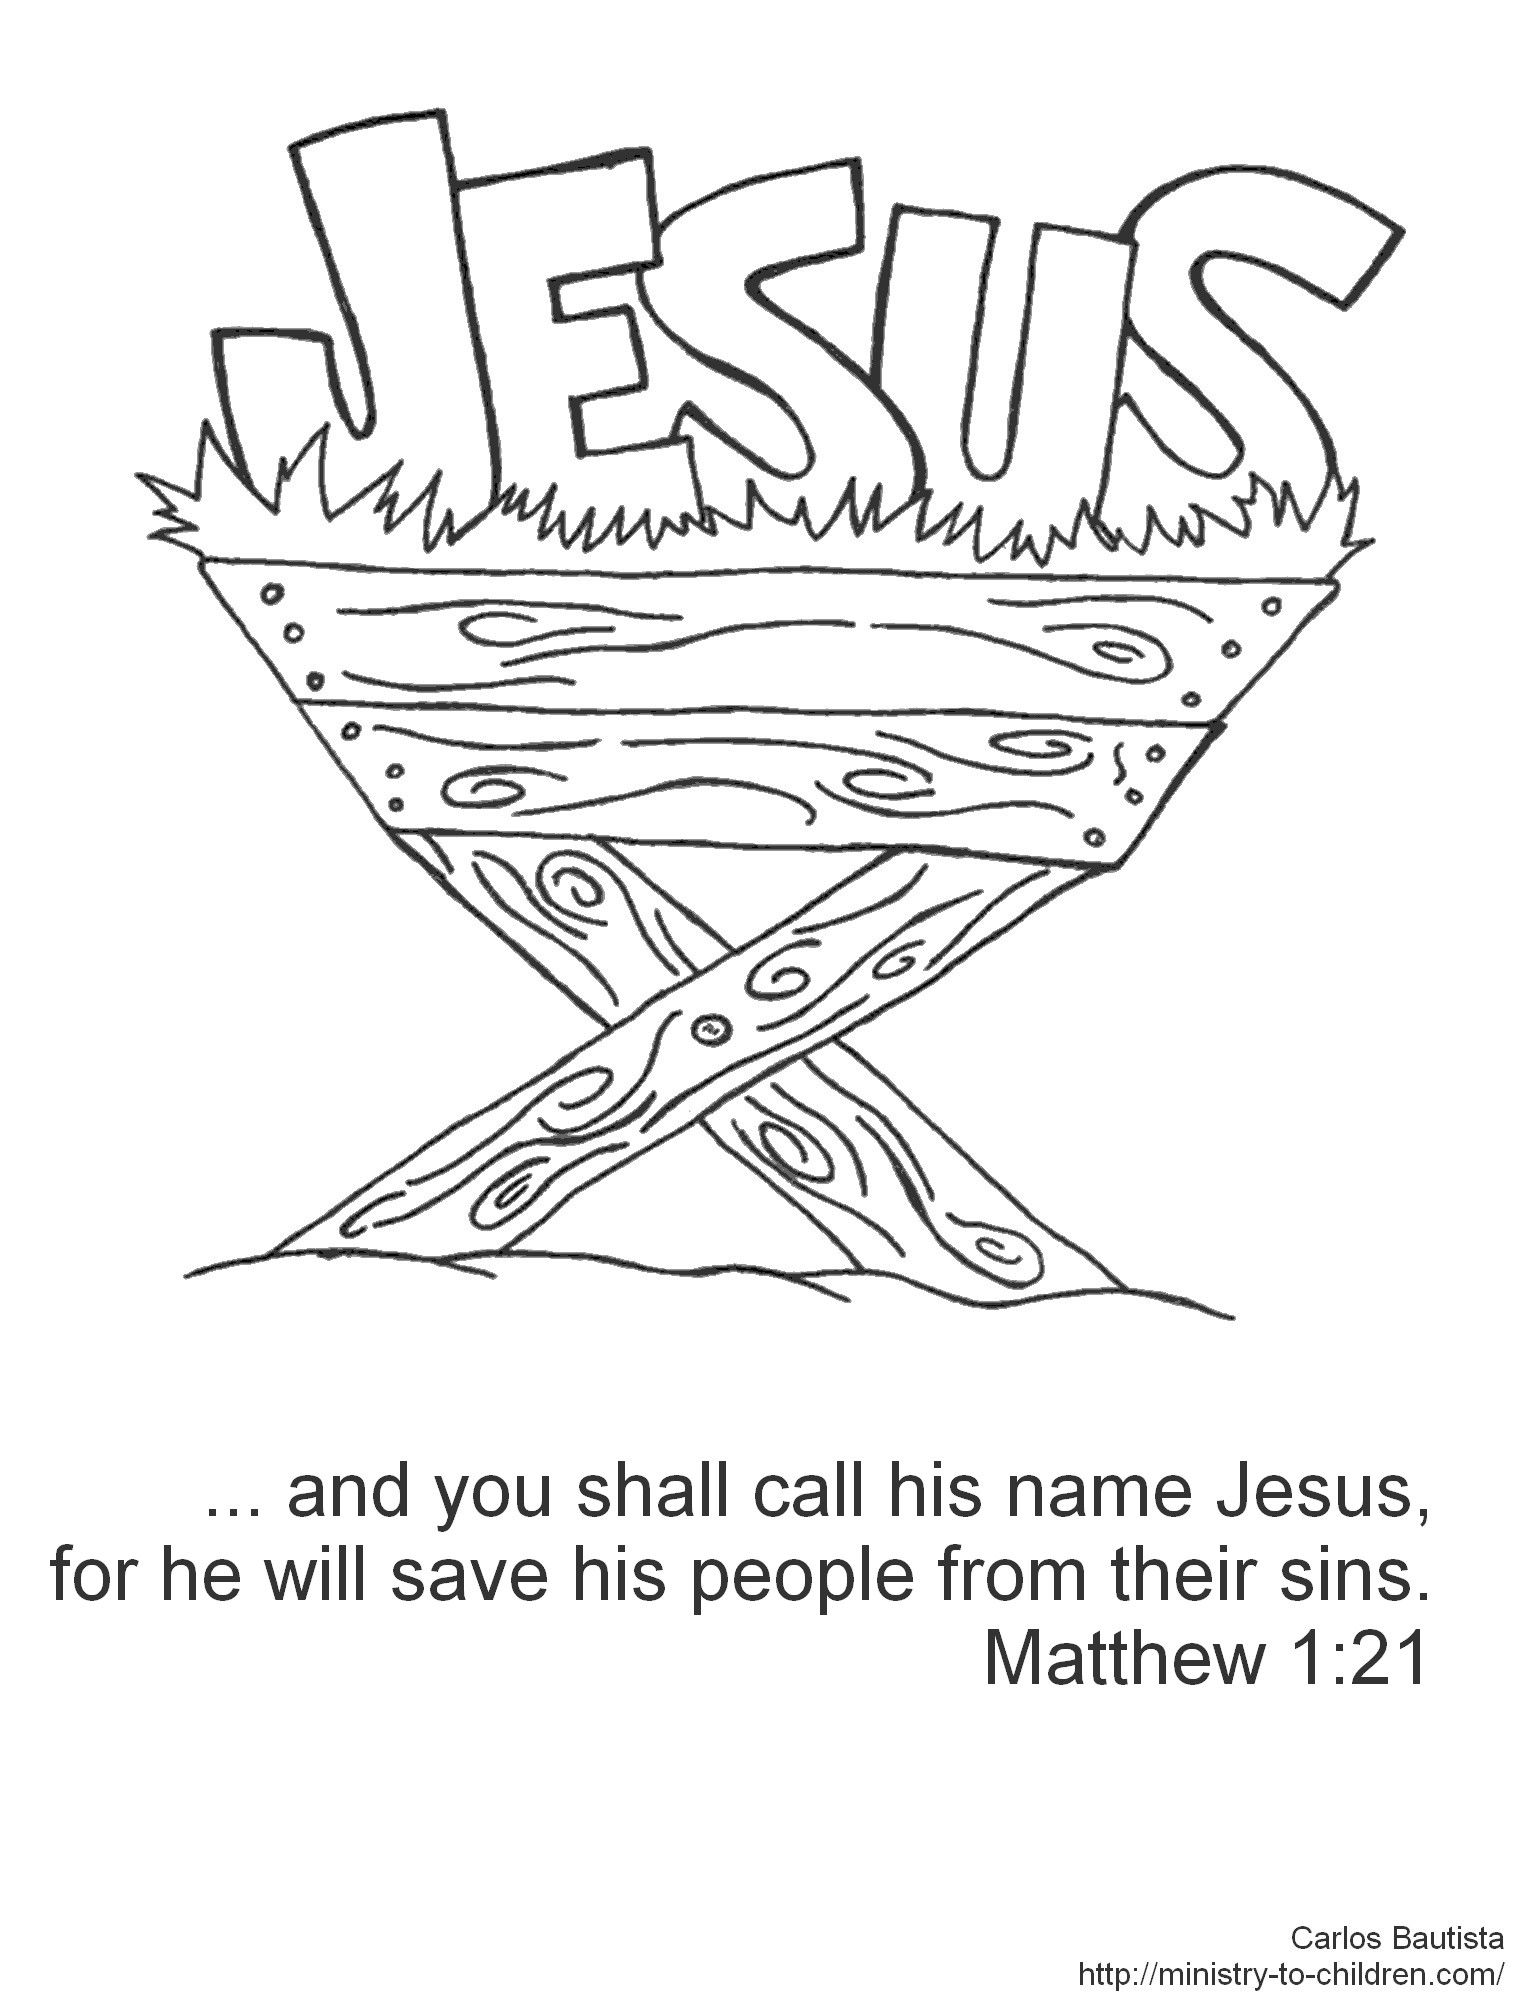 Bible verse coloring pages for adults google search bible